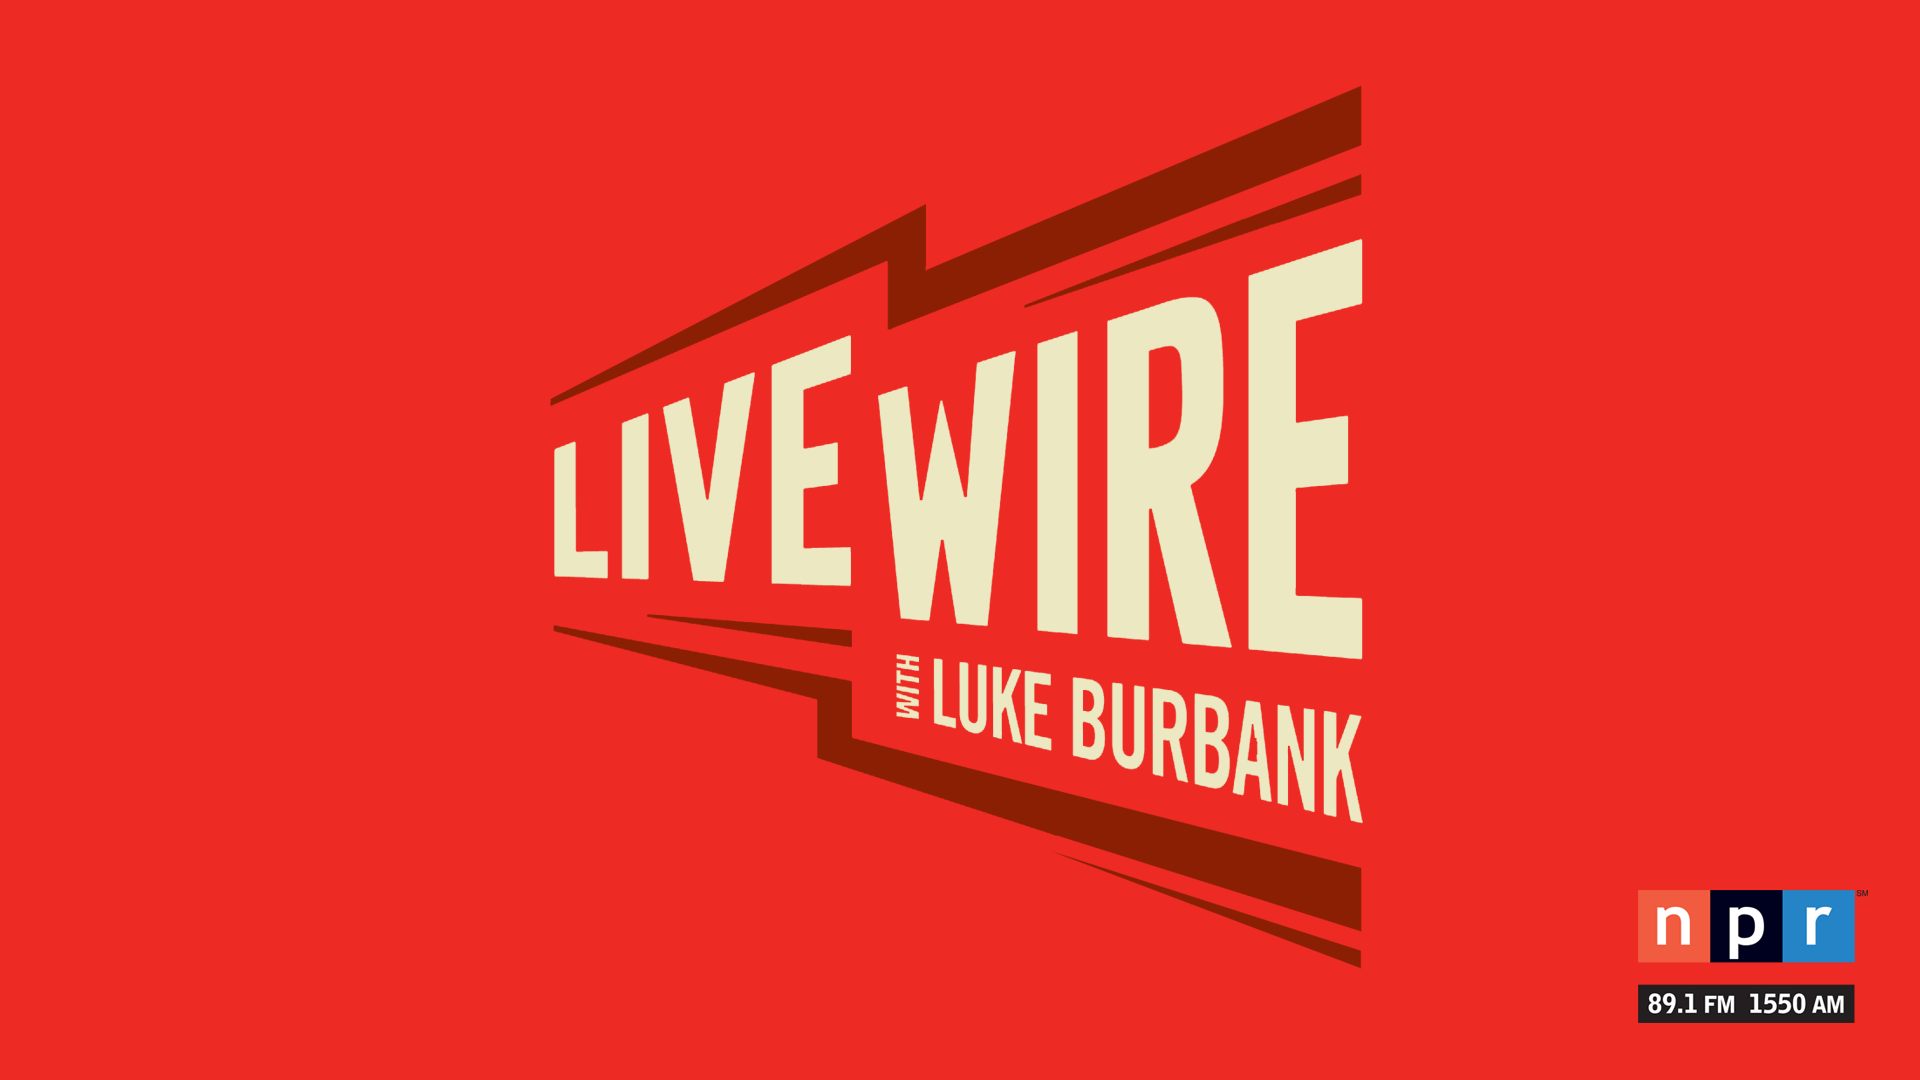 Live Wire radio hero